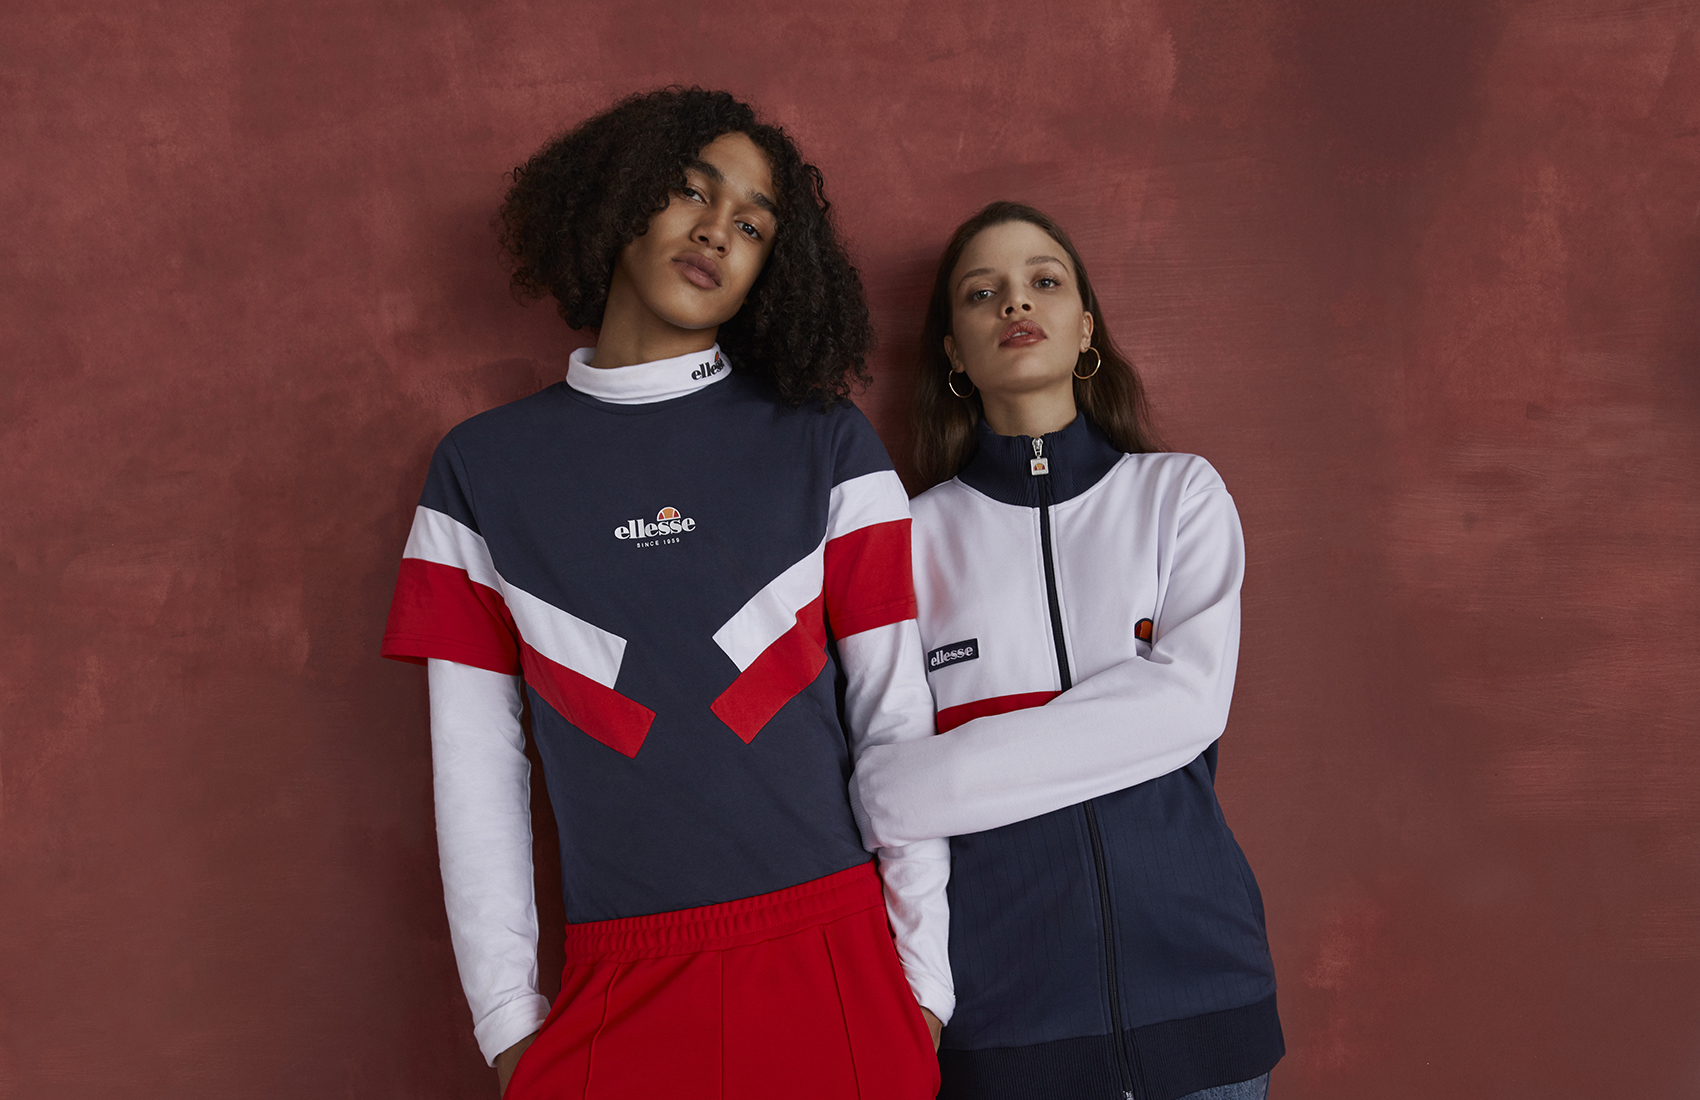 Ellesse heritage collection